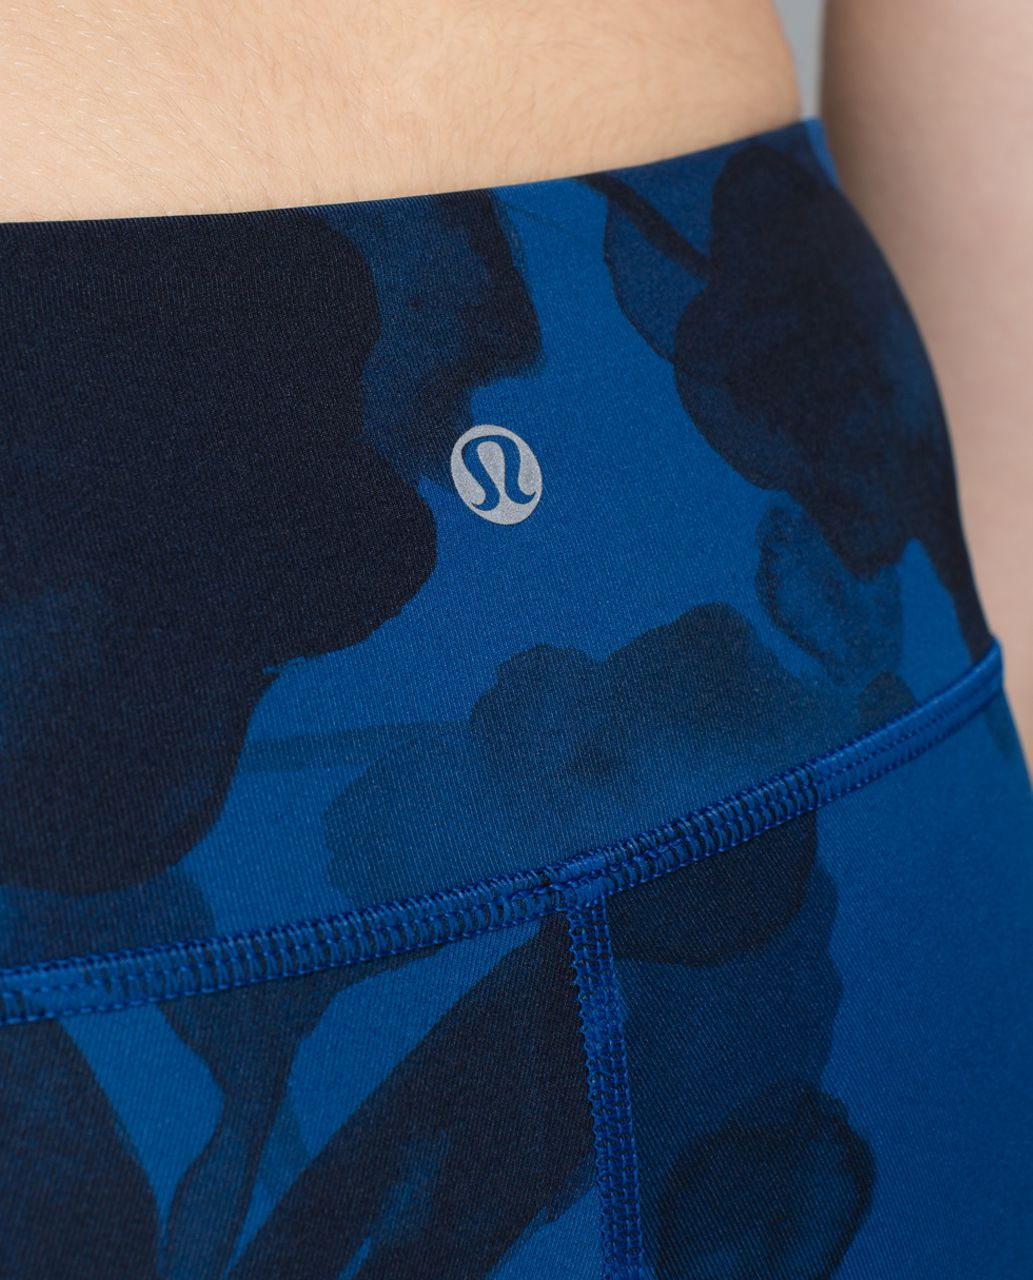 Lululemon Wunder Under Pant *Full-On Luxtreme - Jumbo Inky Floral Black Inkwell